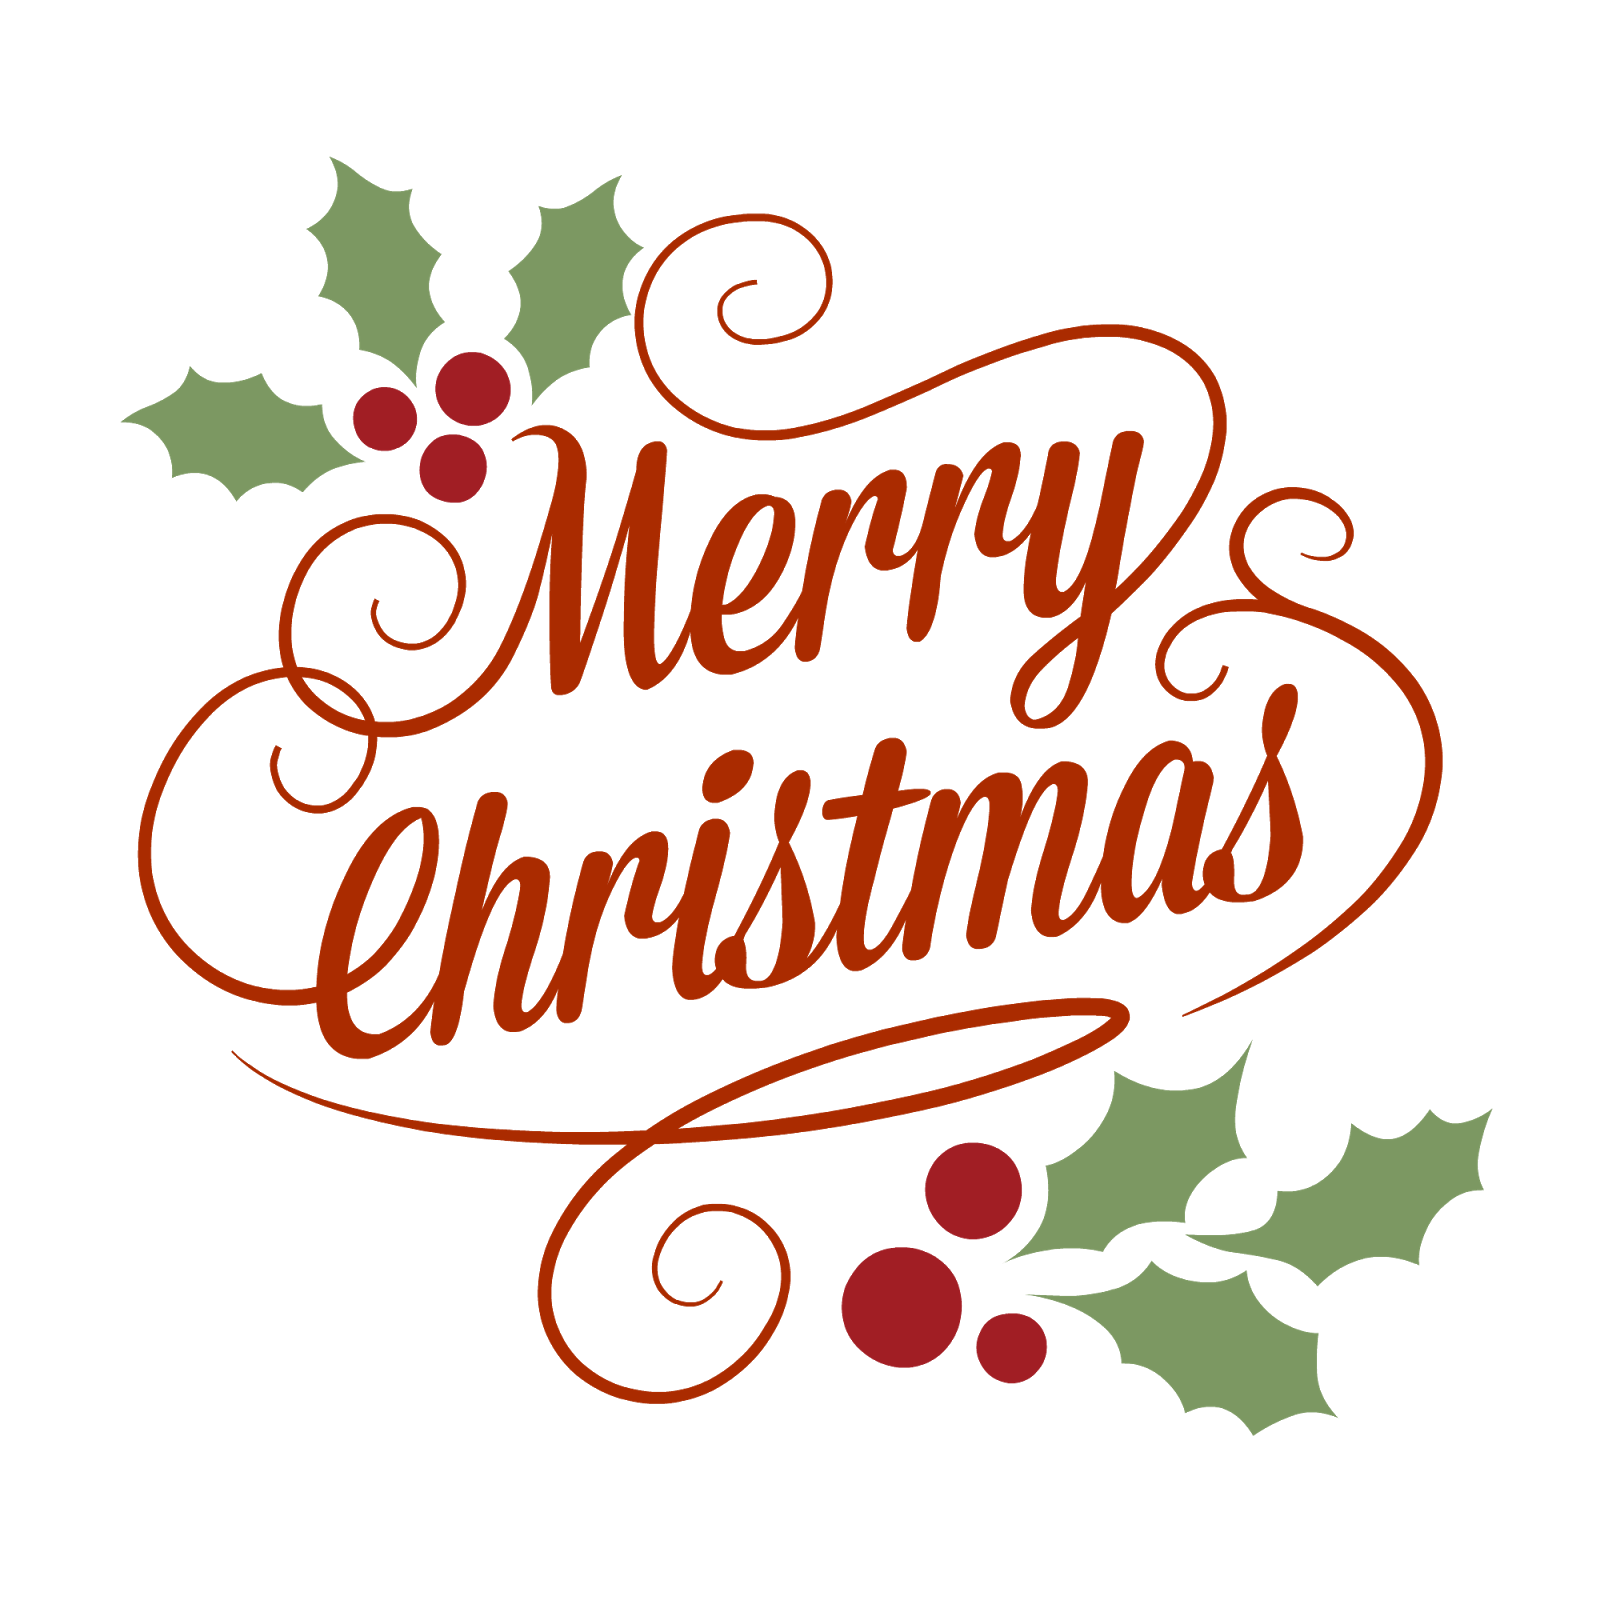 merry christmas clipart rustic